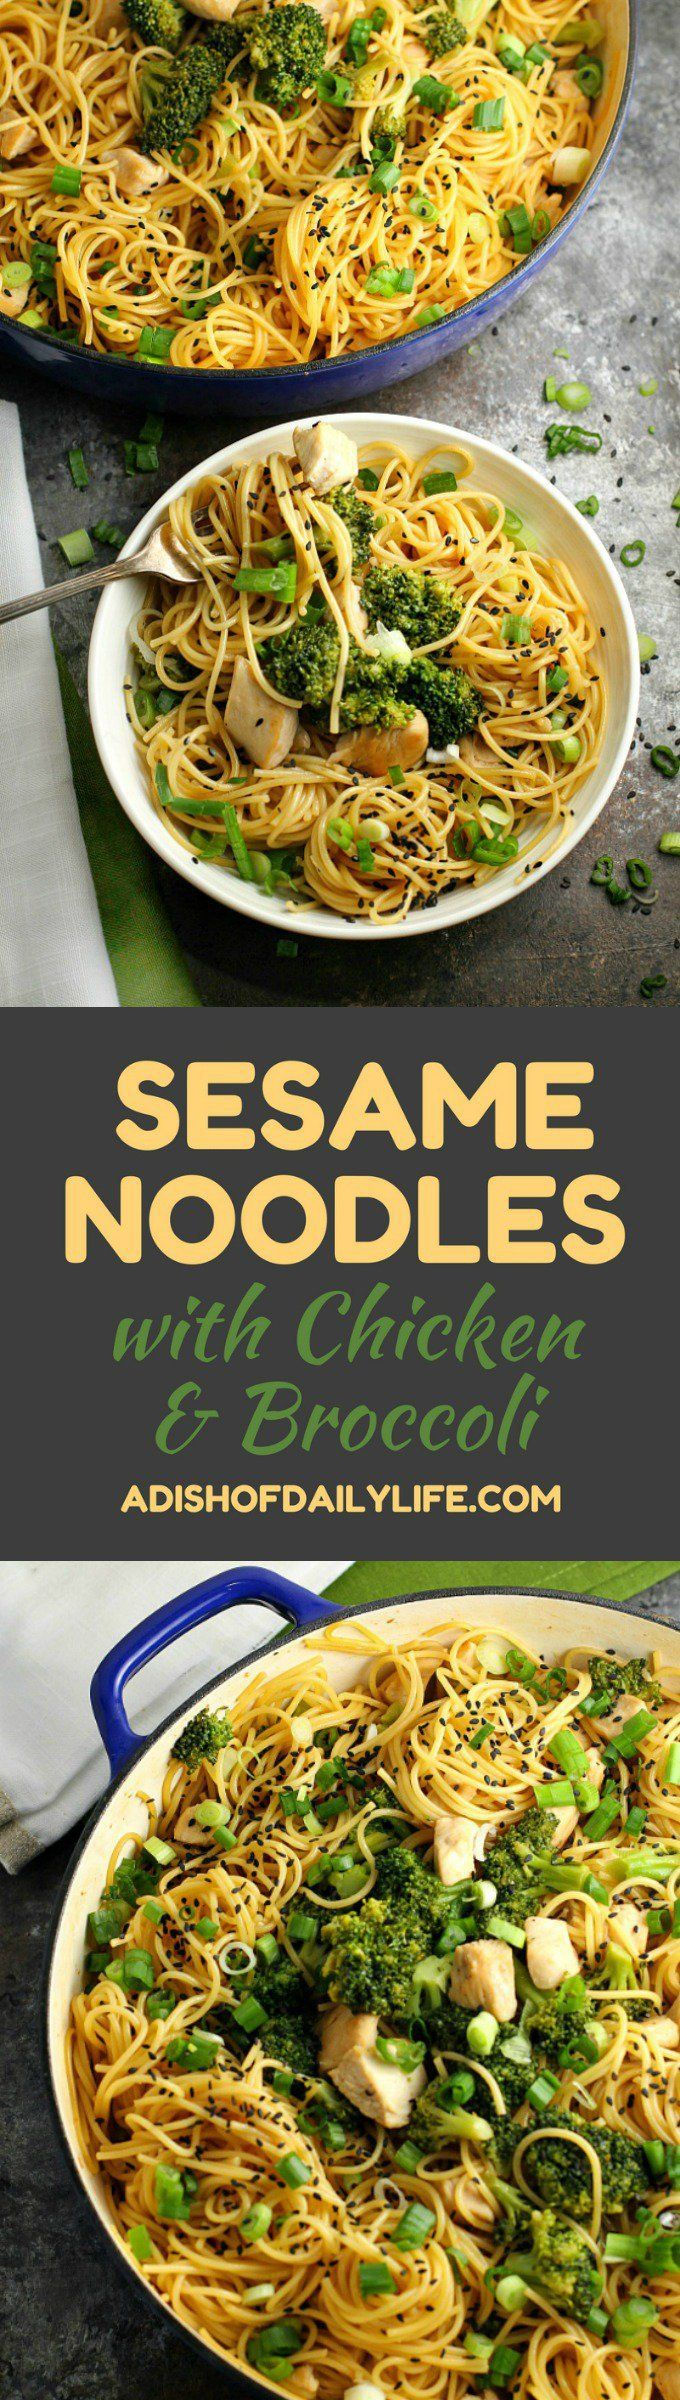 Sesame Noodles with Chicken and Broccoli...an easy and delicious one pot meal that is perfect for a dinner or potlucks!